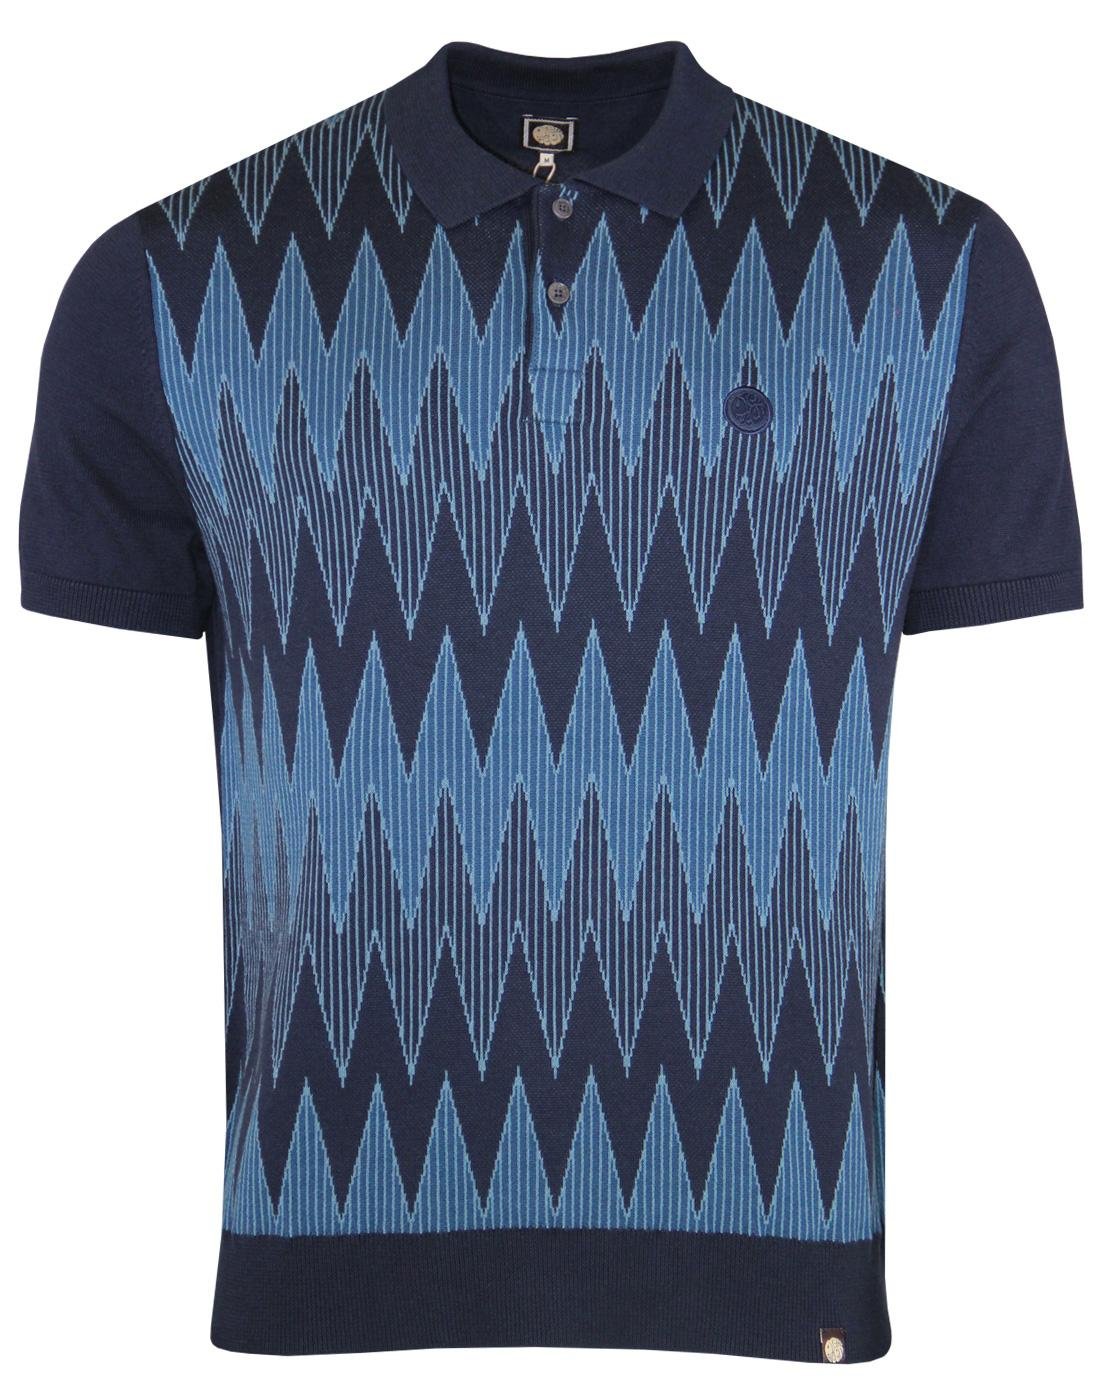 Drifter PRETTY GREEN Mod Radio Wave Knit Polo NAVY